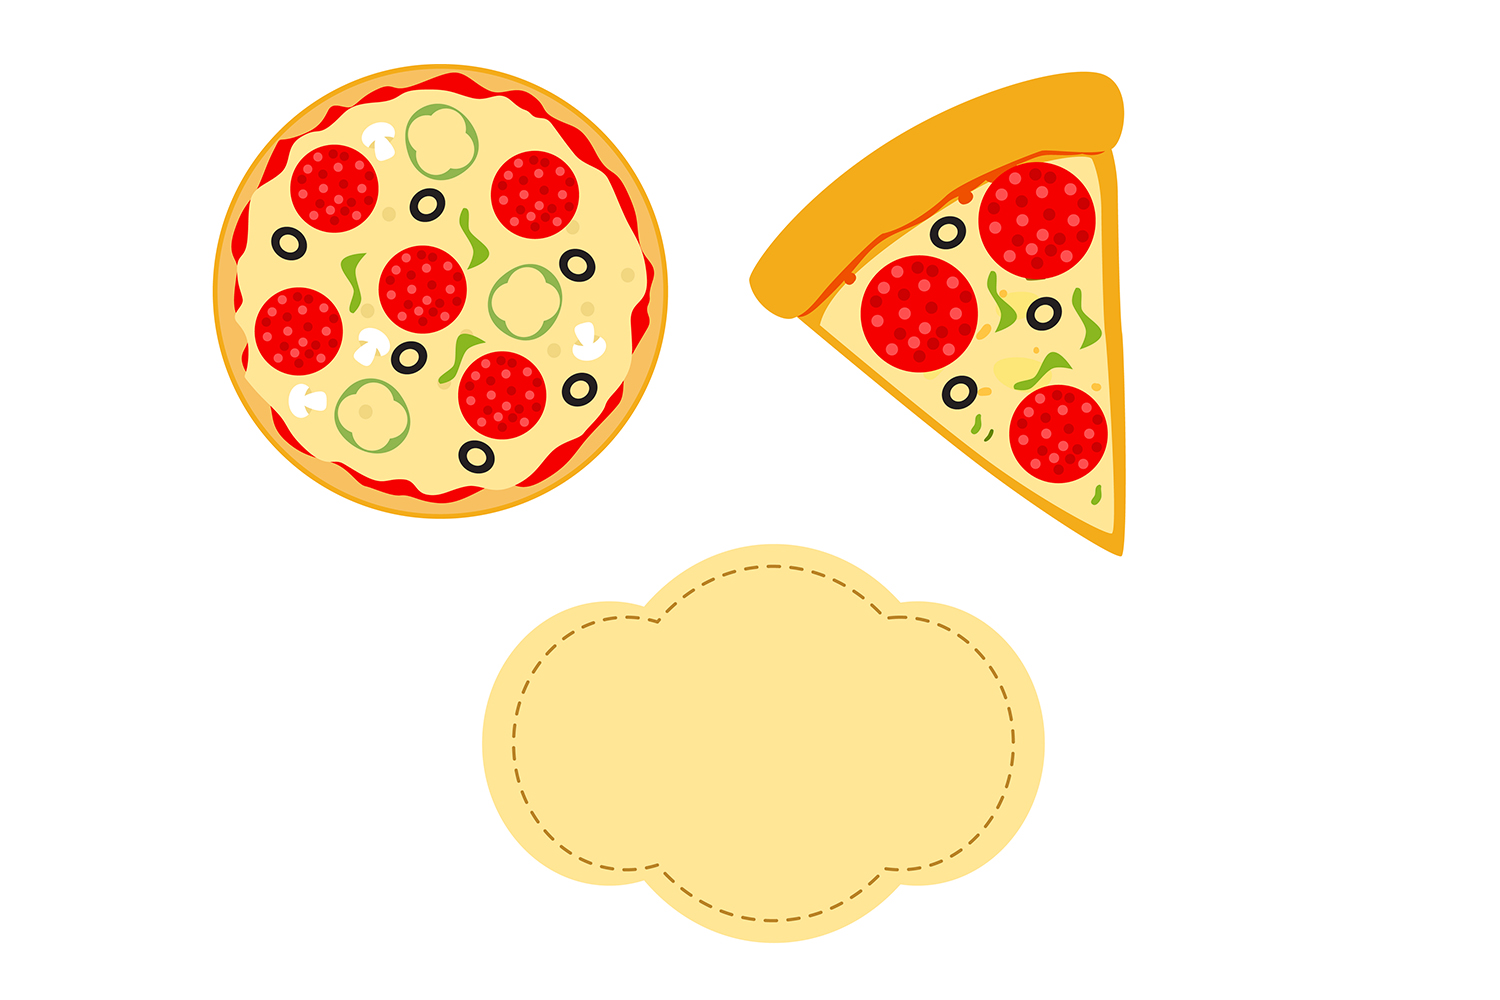 image relating to Pizza Printable identified as Pizza Electronic Paper, Foodstuff record, quick food items practice, Meals printable, electronic sbook, sbooking papers, pizza clipart.